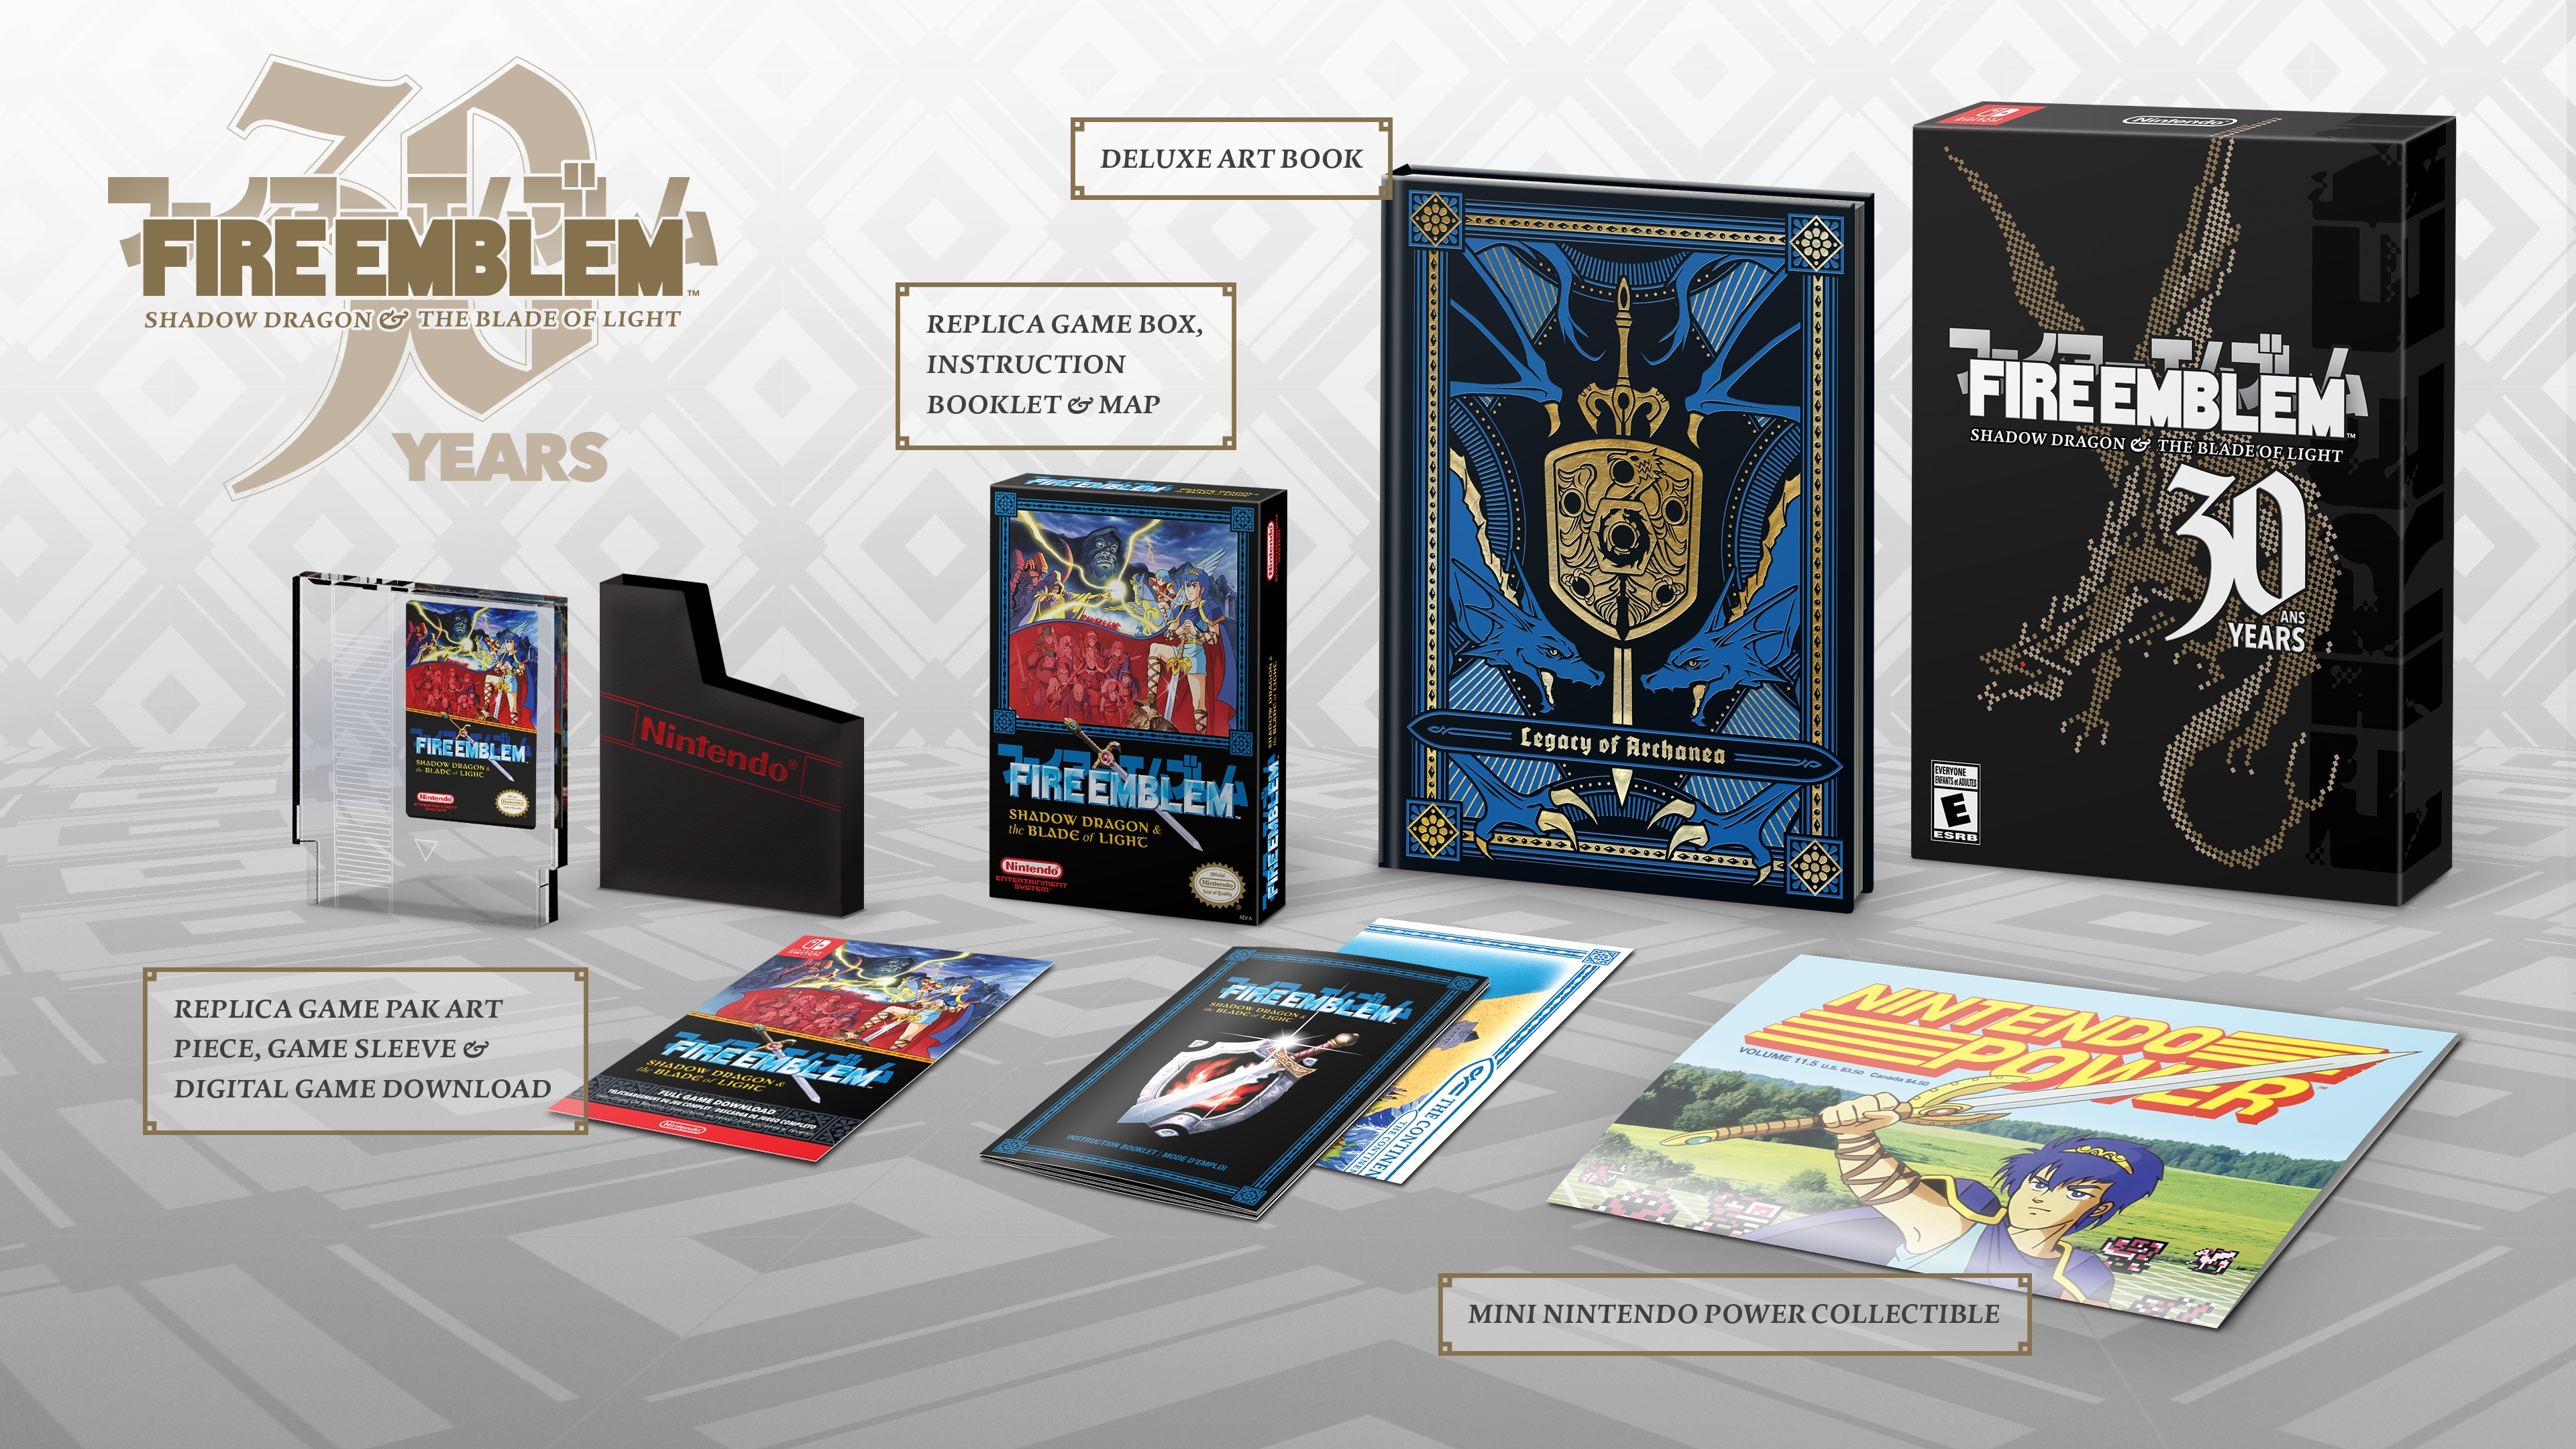 Fire Emblem's launch title finally coming to US Dec. 4, 2020